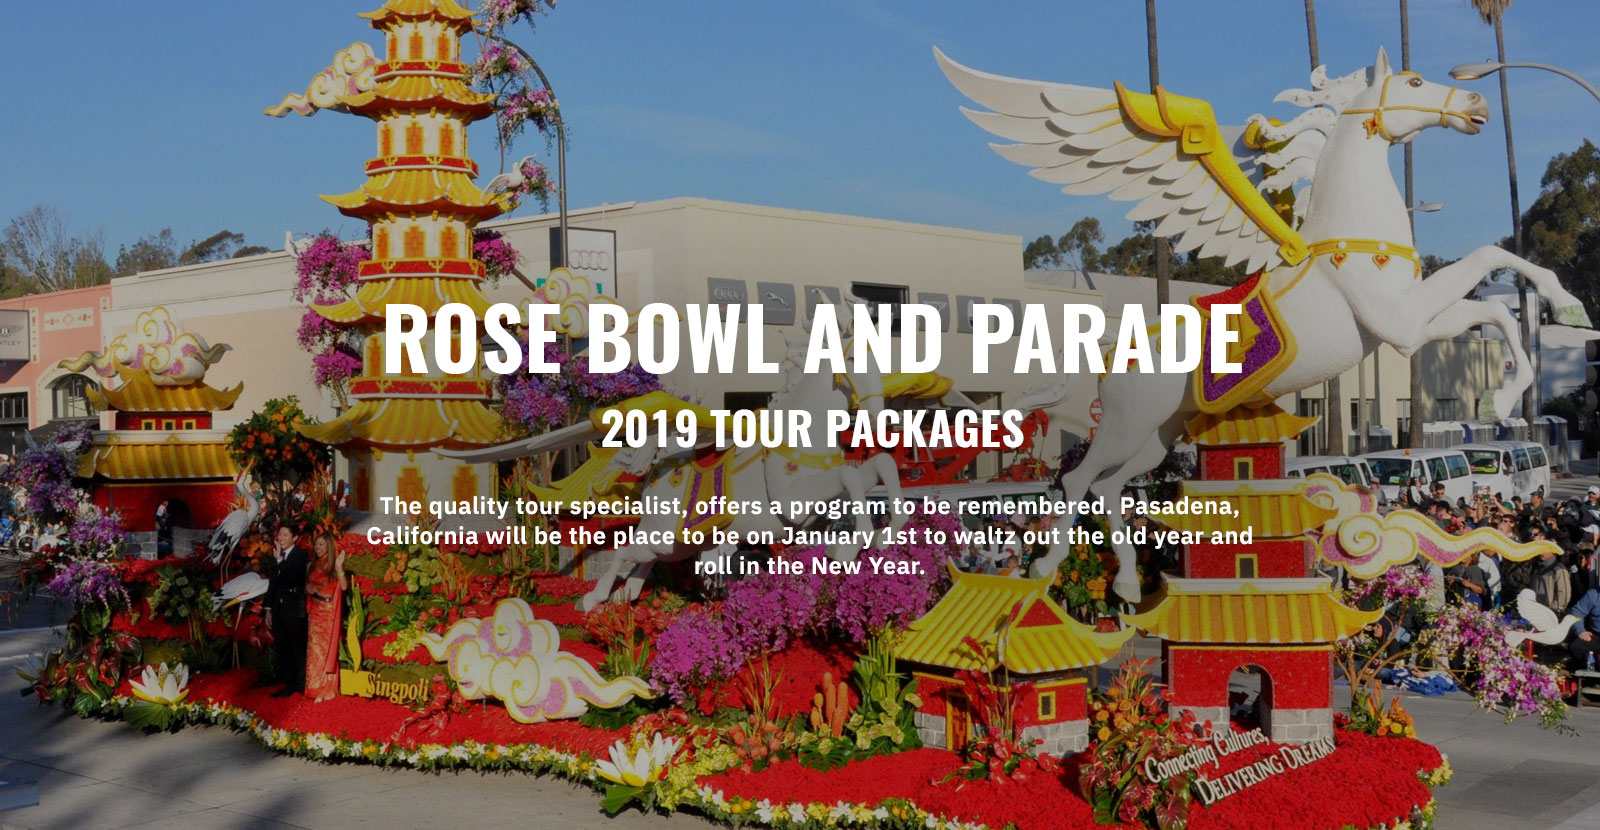 Rose Bowl Parade Travel Packages 2019